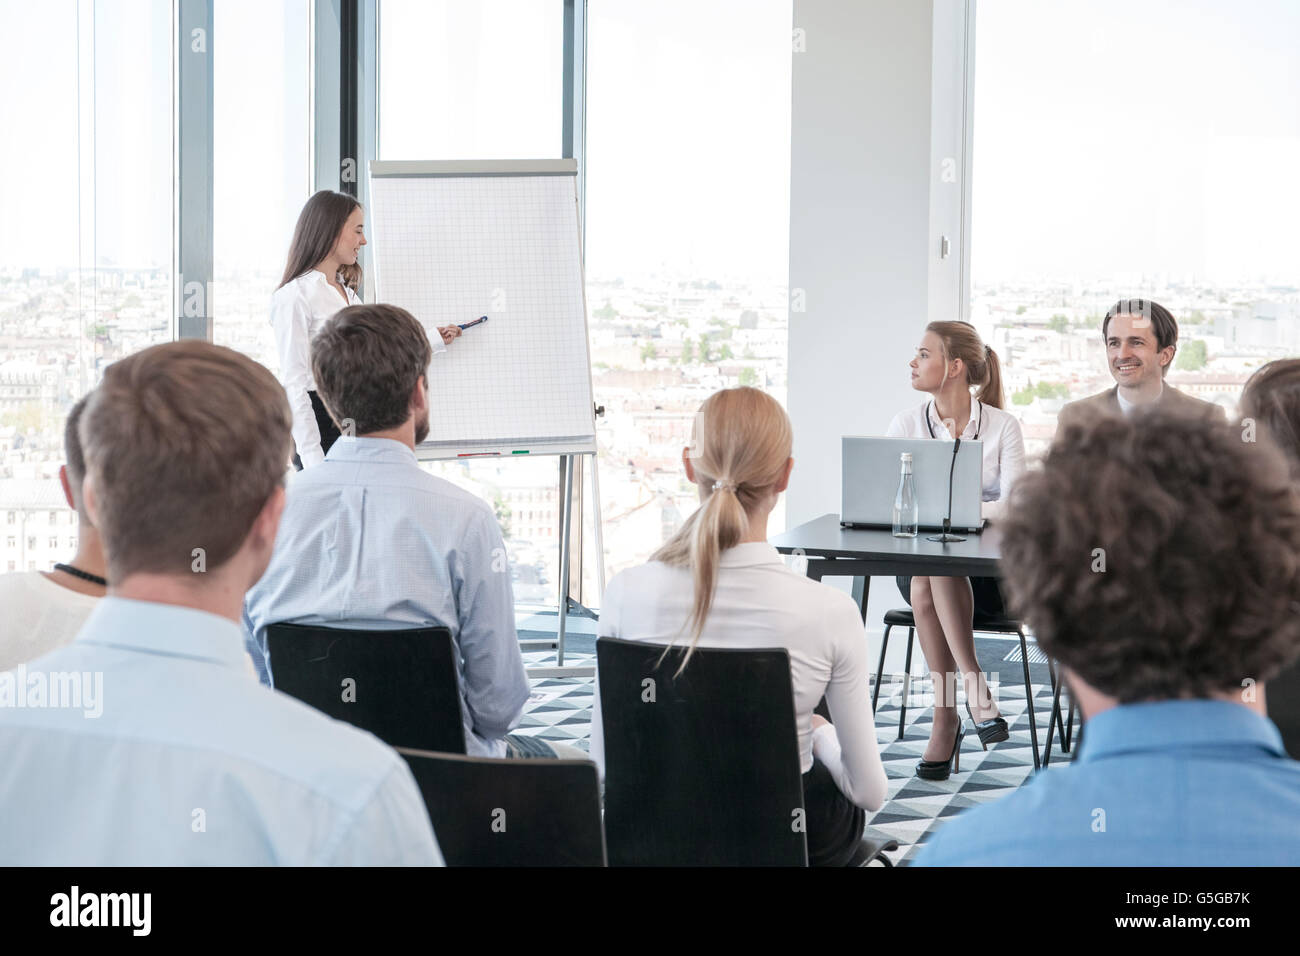 Business woman speaking at presentation and pointing to white board - Stock Image